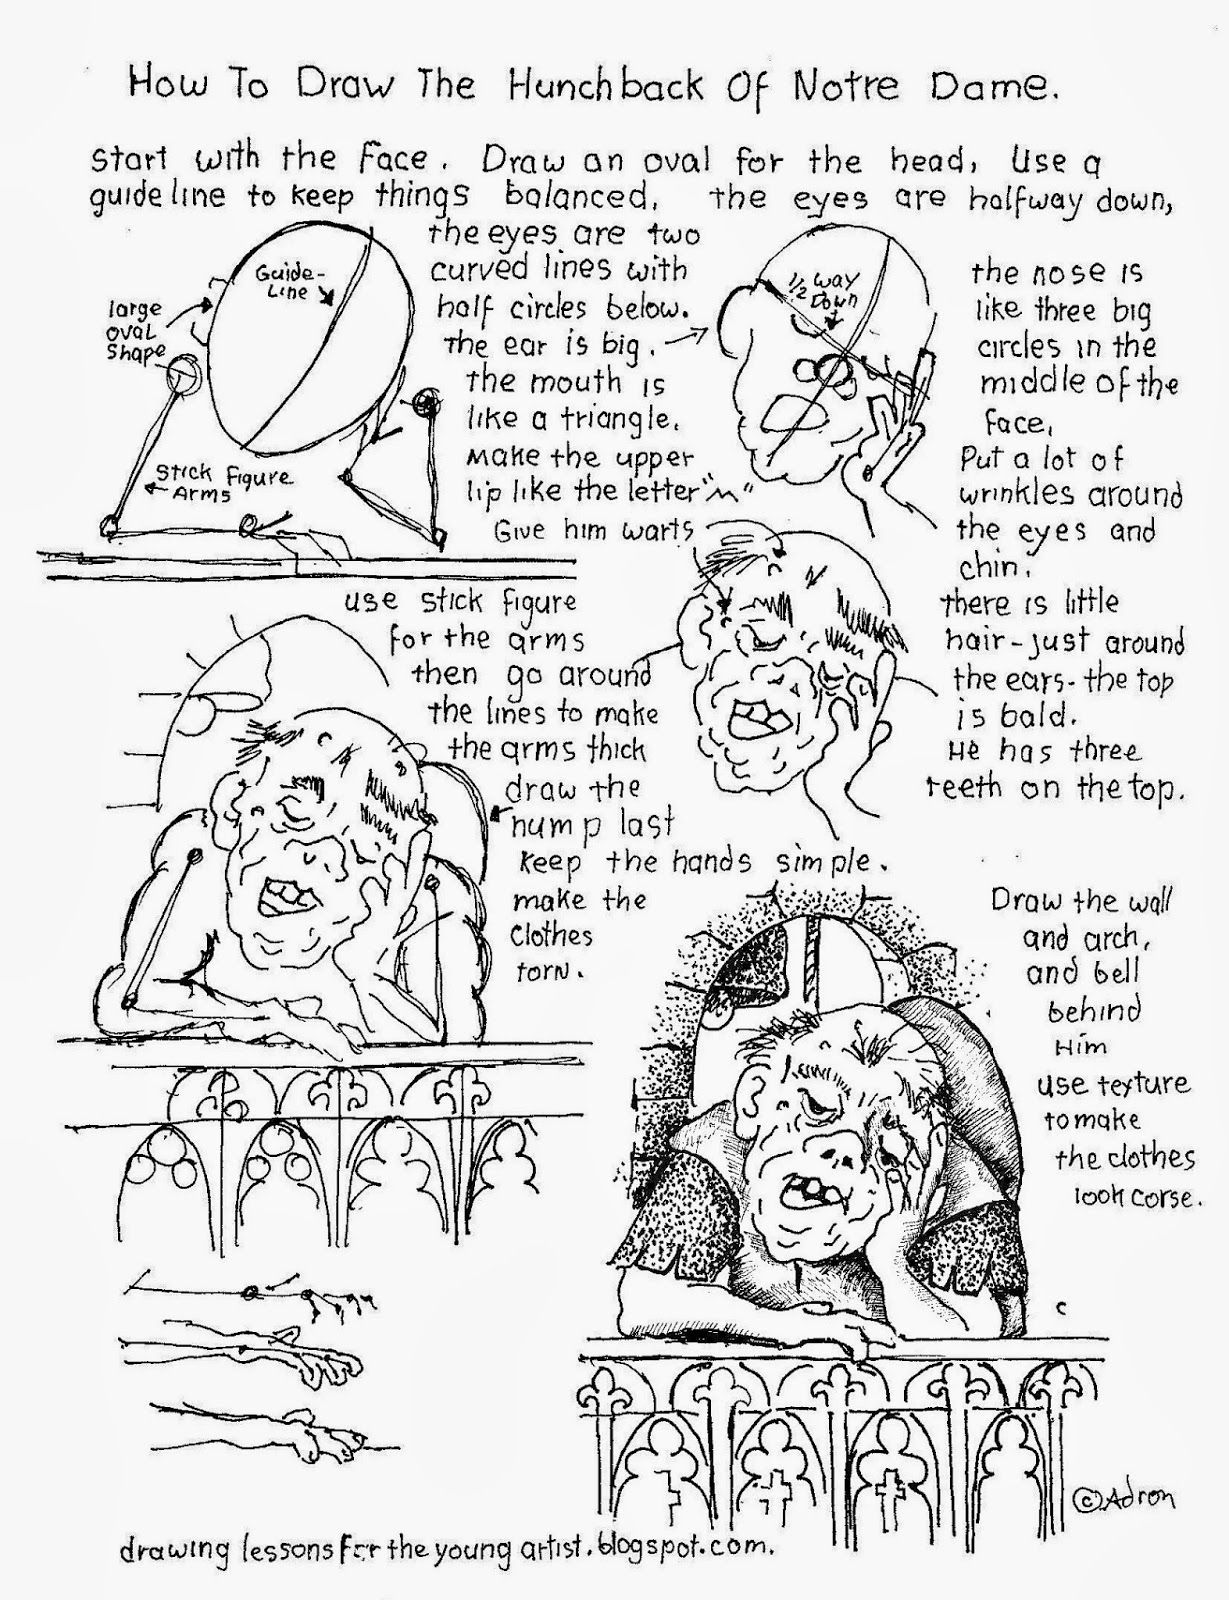 How To Draw The Hunchback Of Notre Dame Worksheet See